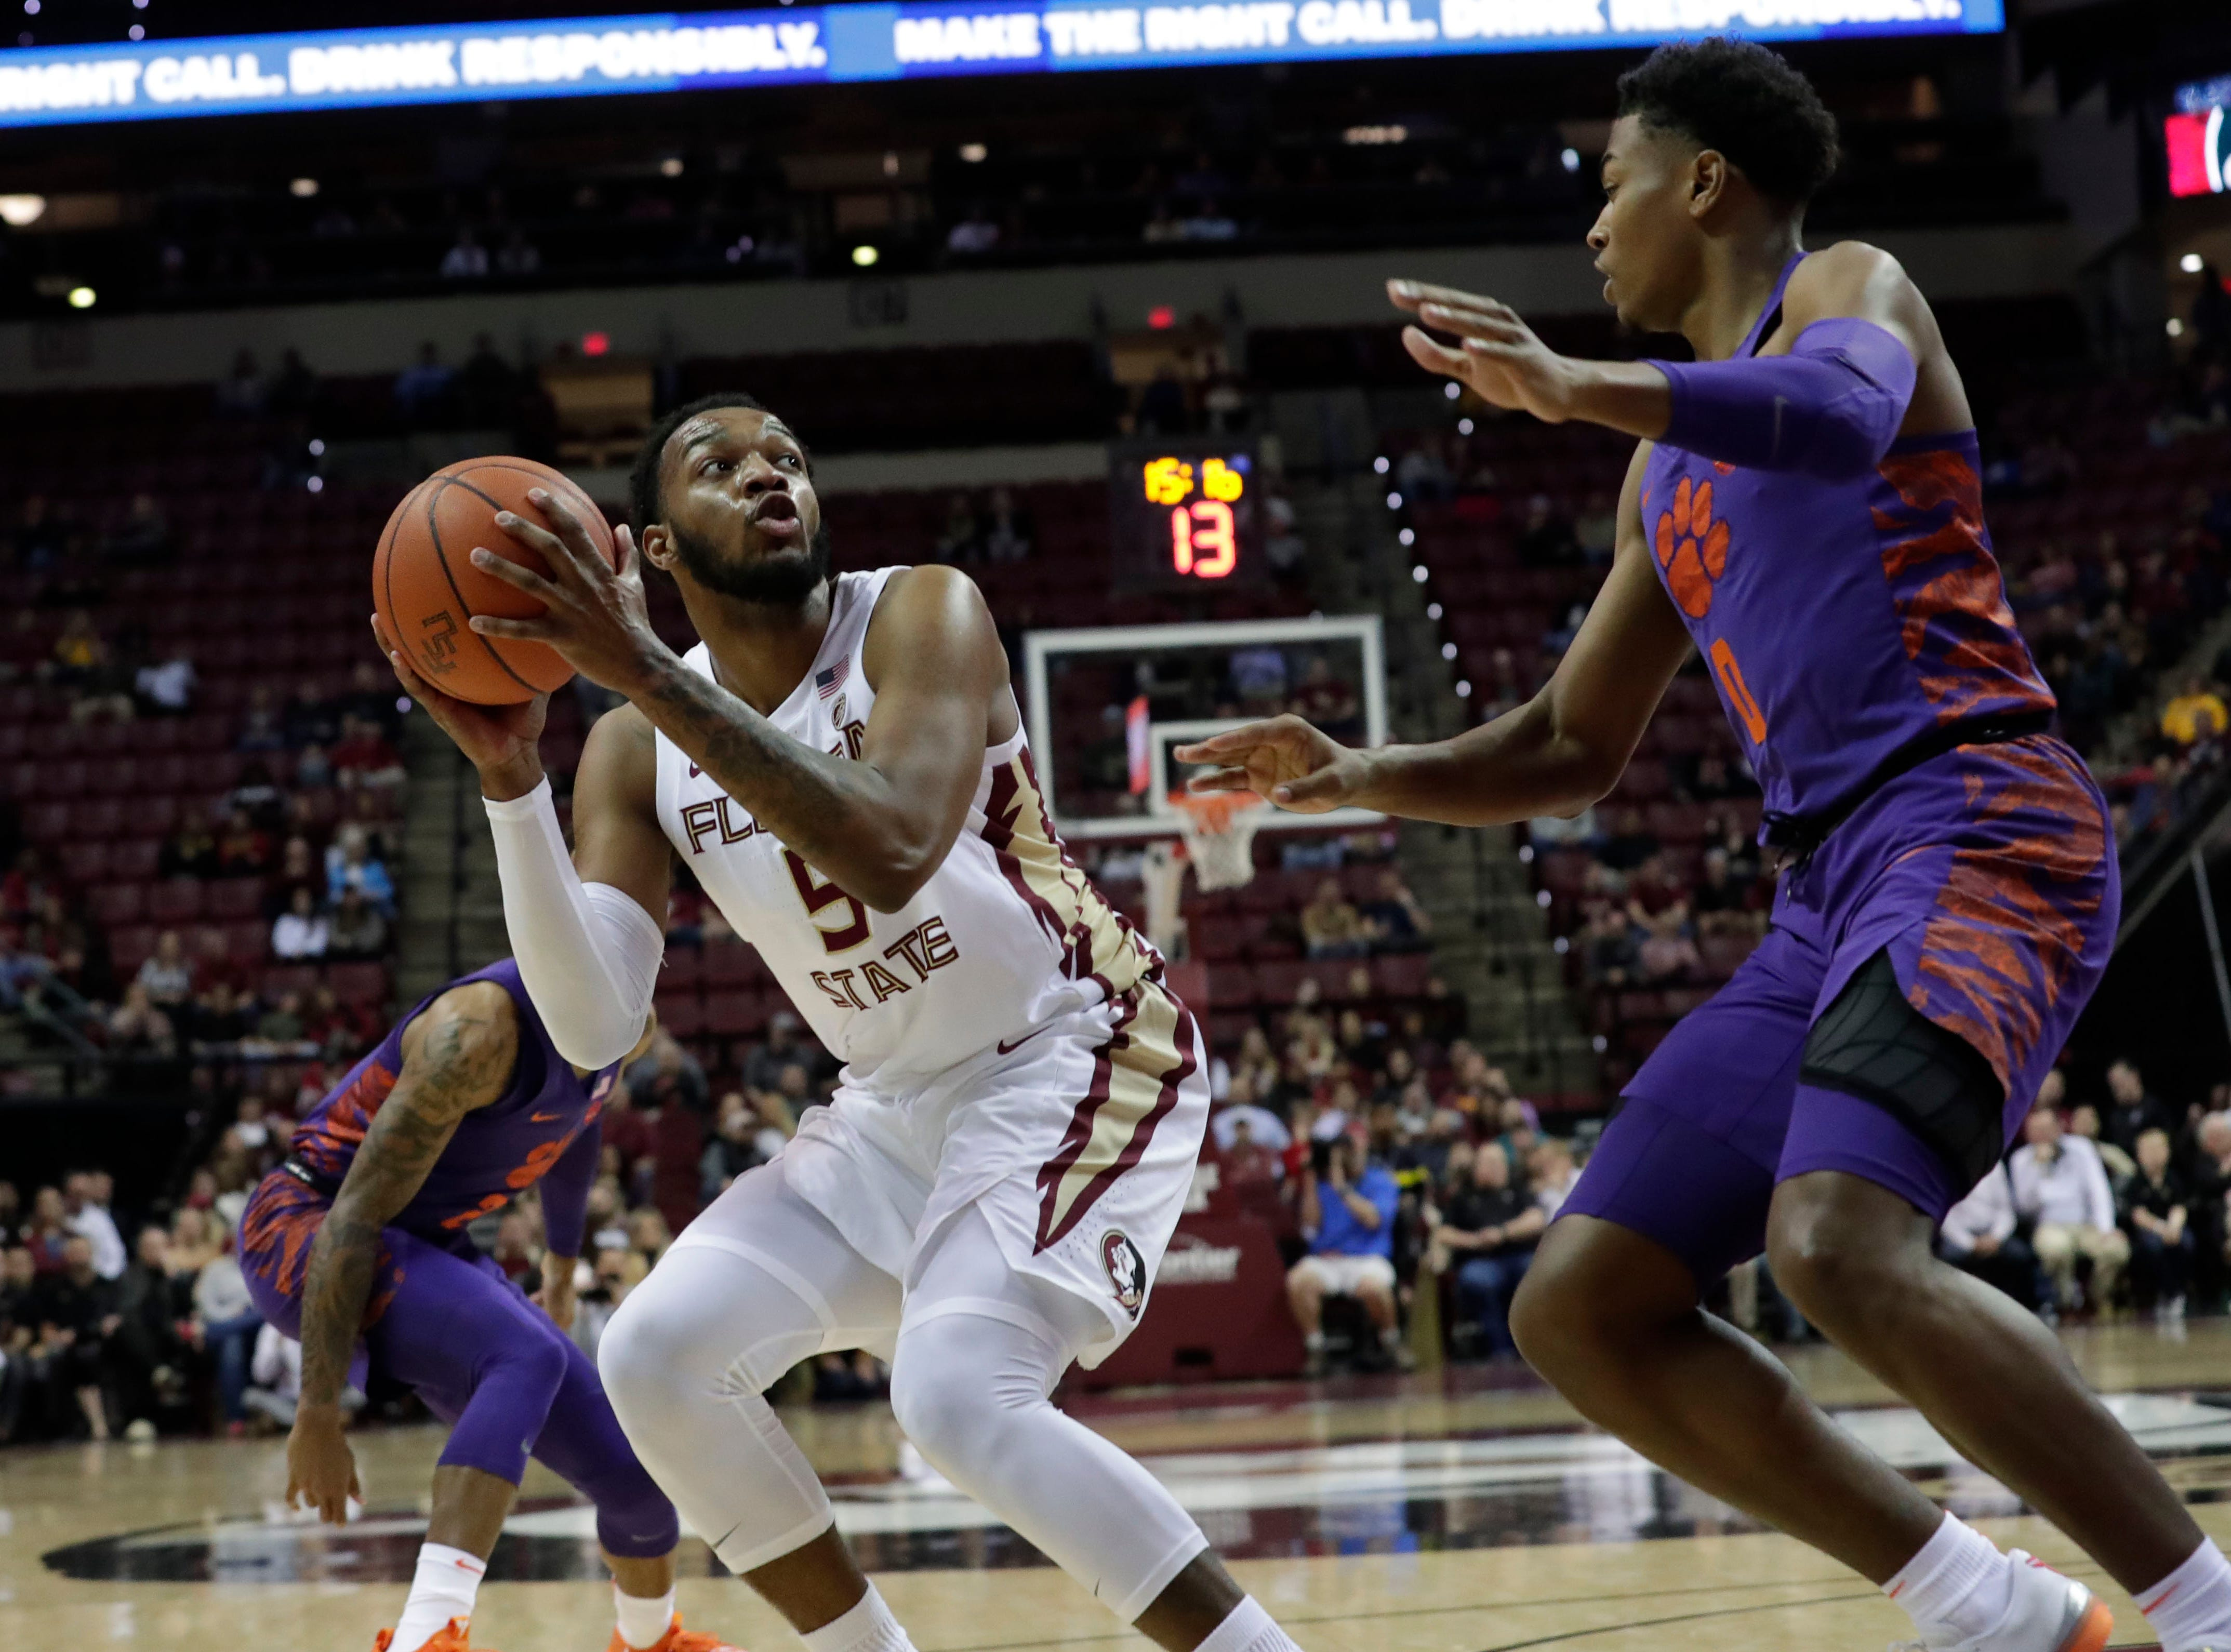 Florida State Seminoles guard PJ Savoy (5) looks to the hoop for an opportunity to shoot. The Florida State Seminoles face off against the Clemson Tigers at the Tucker Civic Center, Tuesday, Jan. 22, 2019.